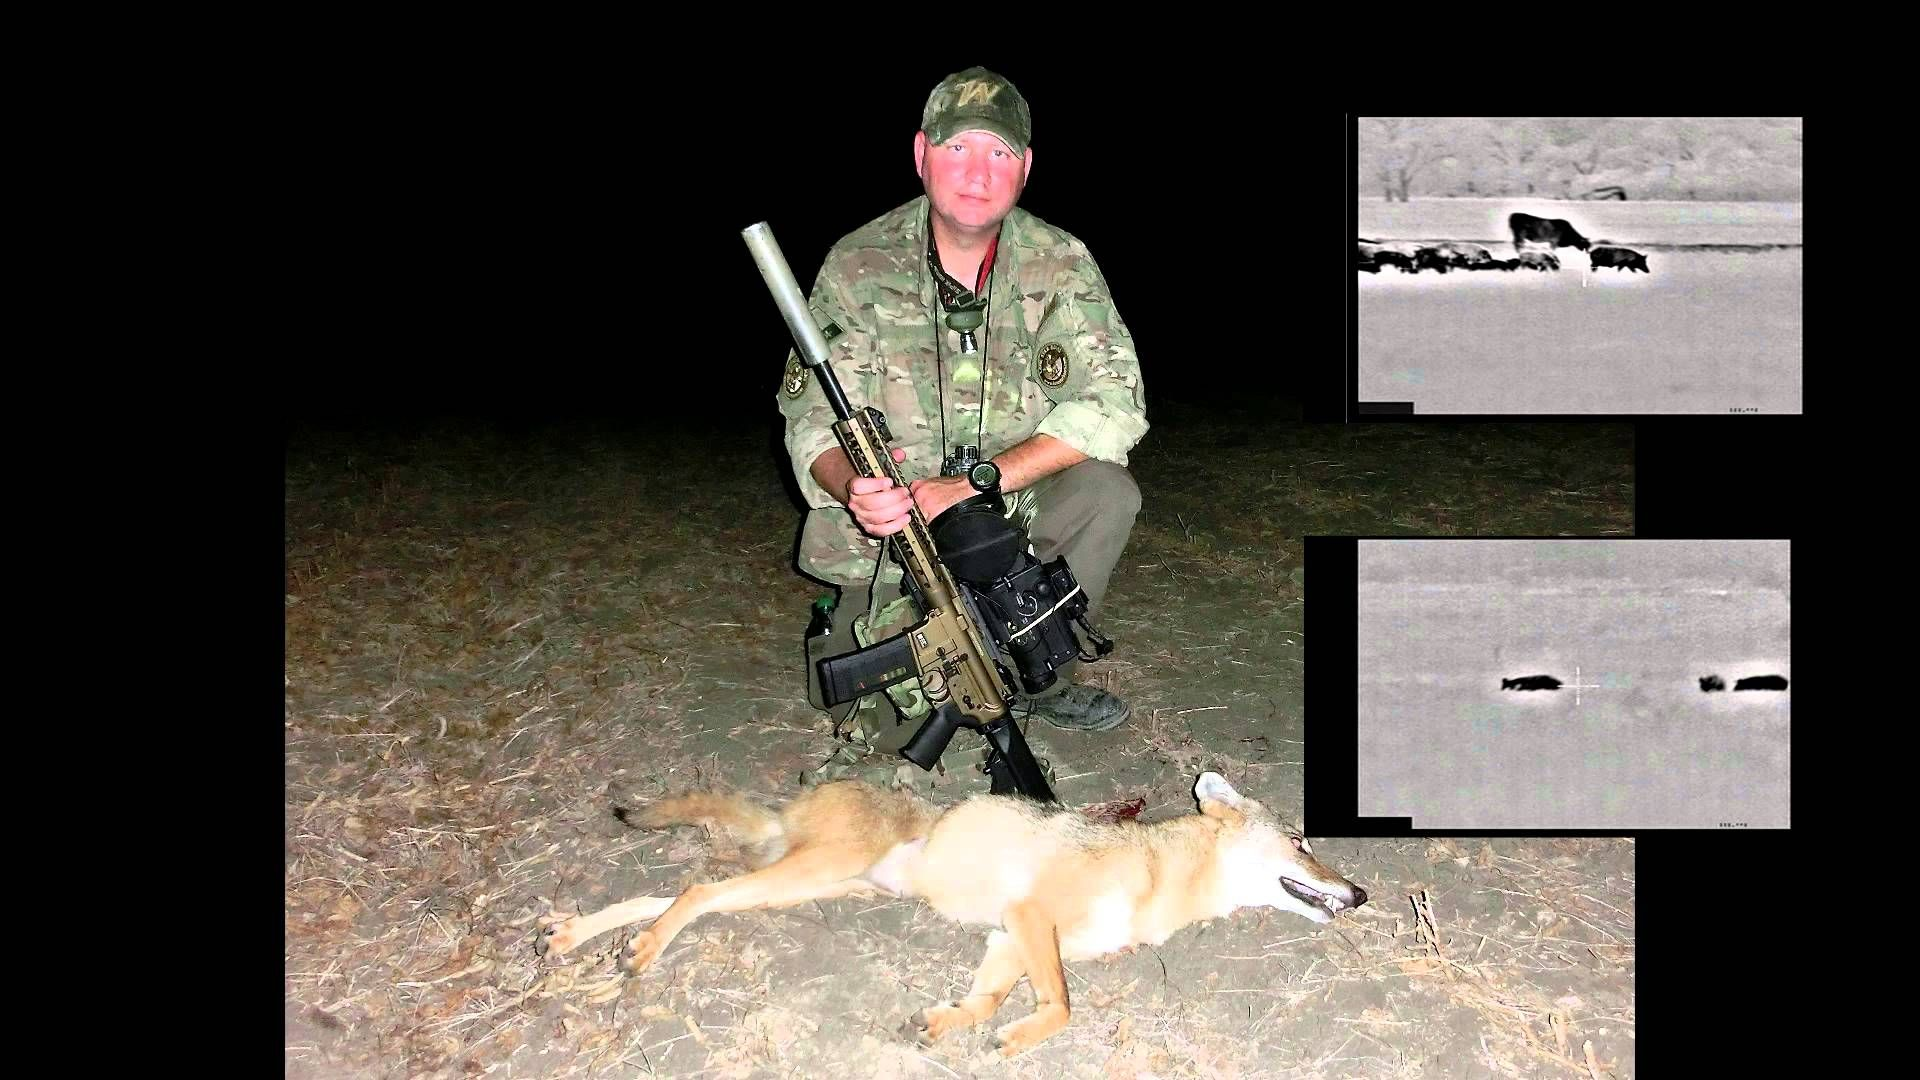 Coyote hunt with suppressed lwrc six8 and thermal coyote